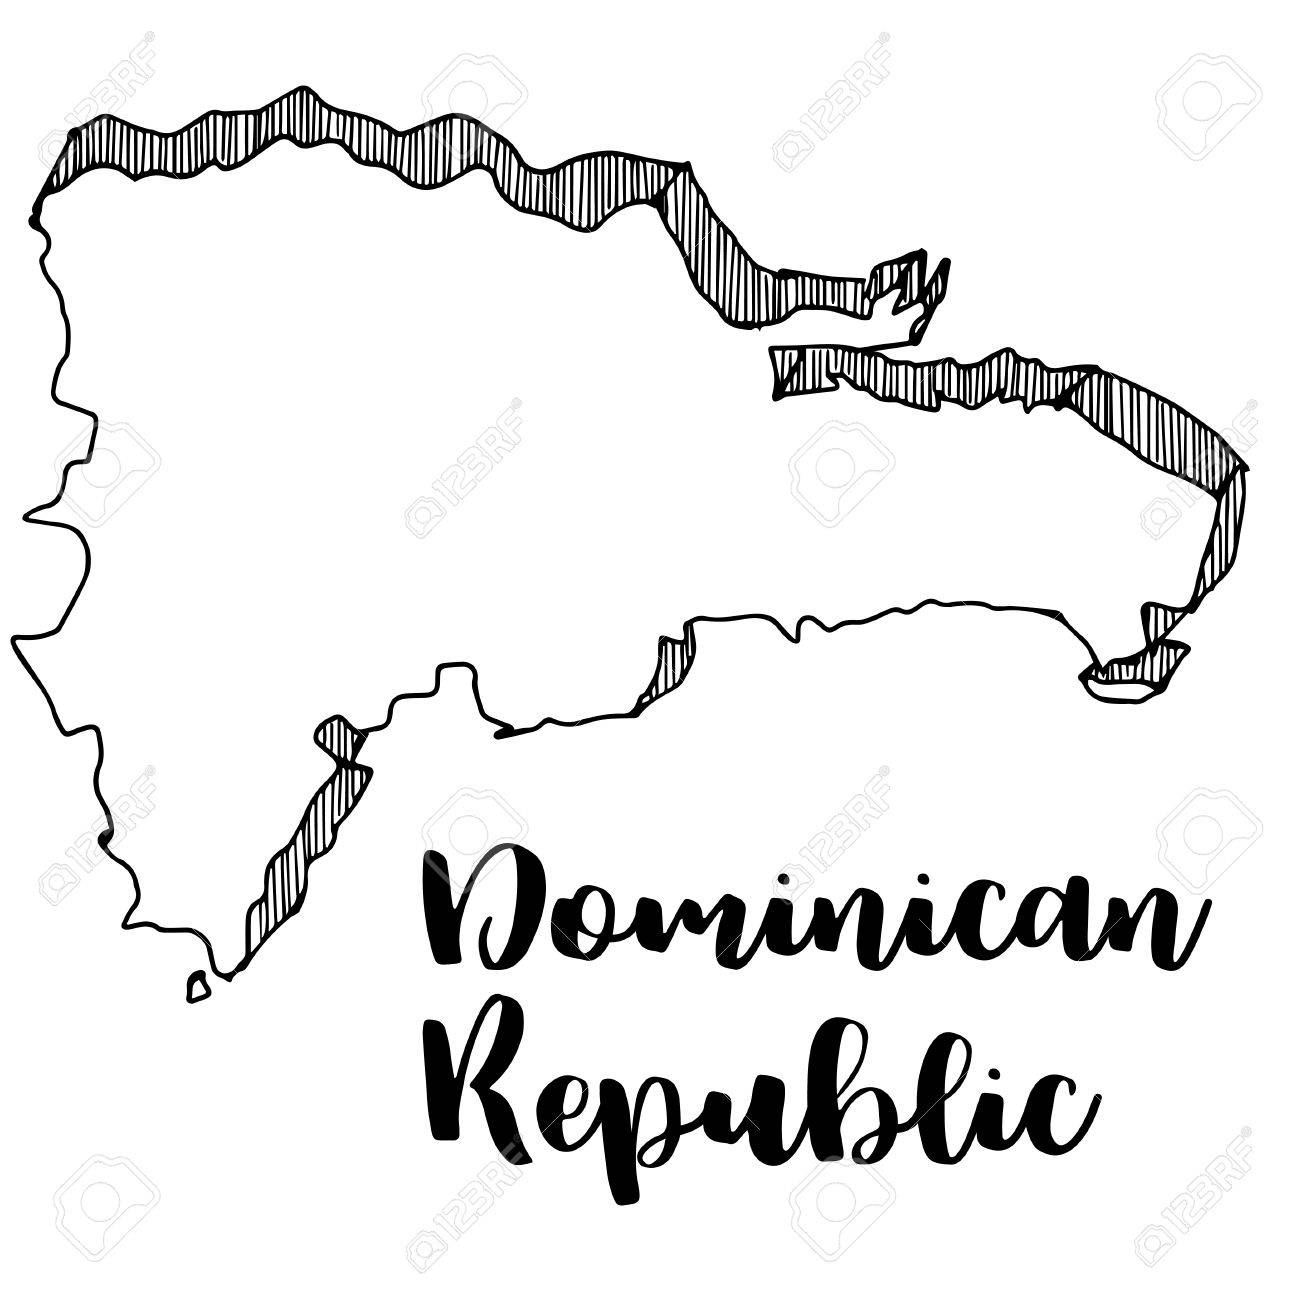 Dominican Republic Vector